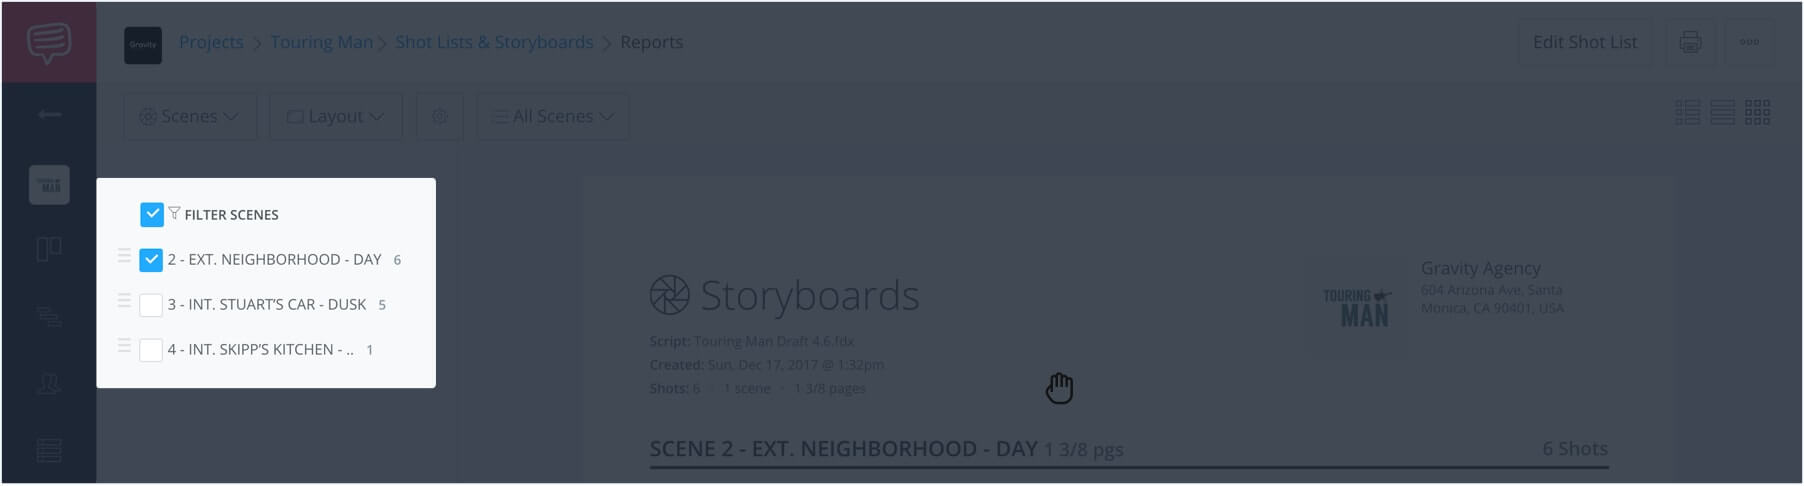 How to Make a Storyboard Online - StudioBinder Storyboard Creator - 21